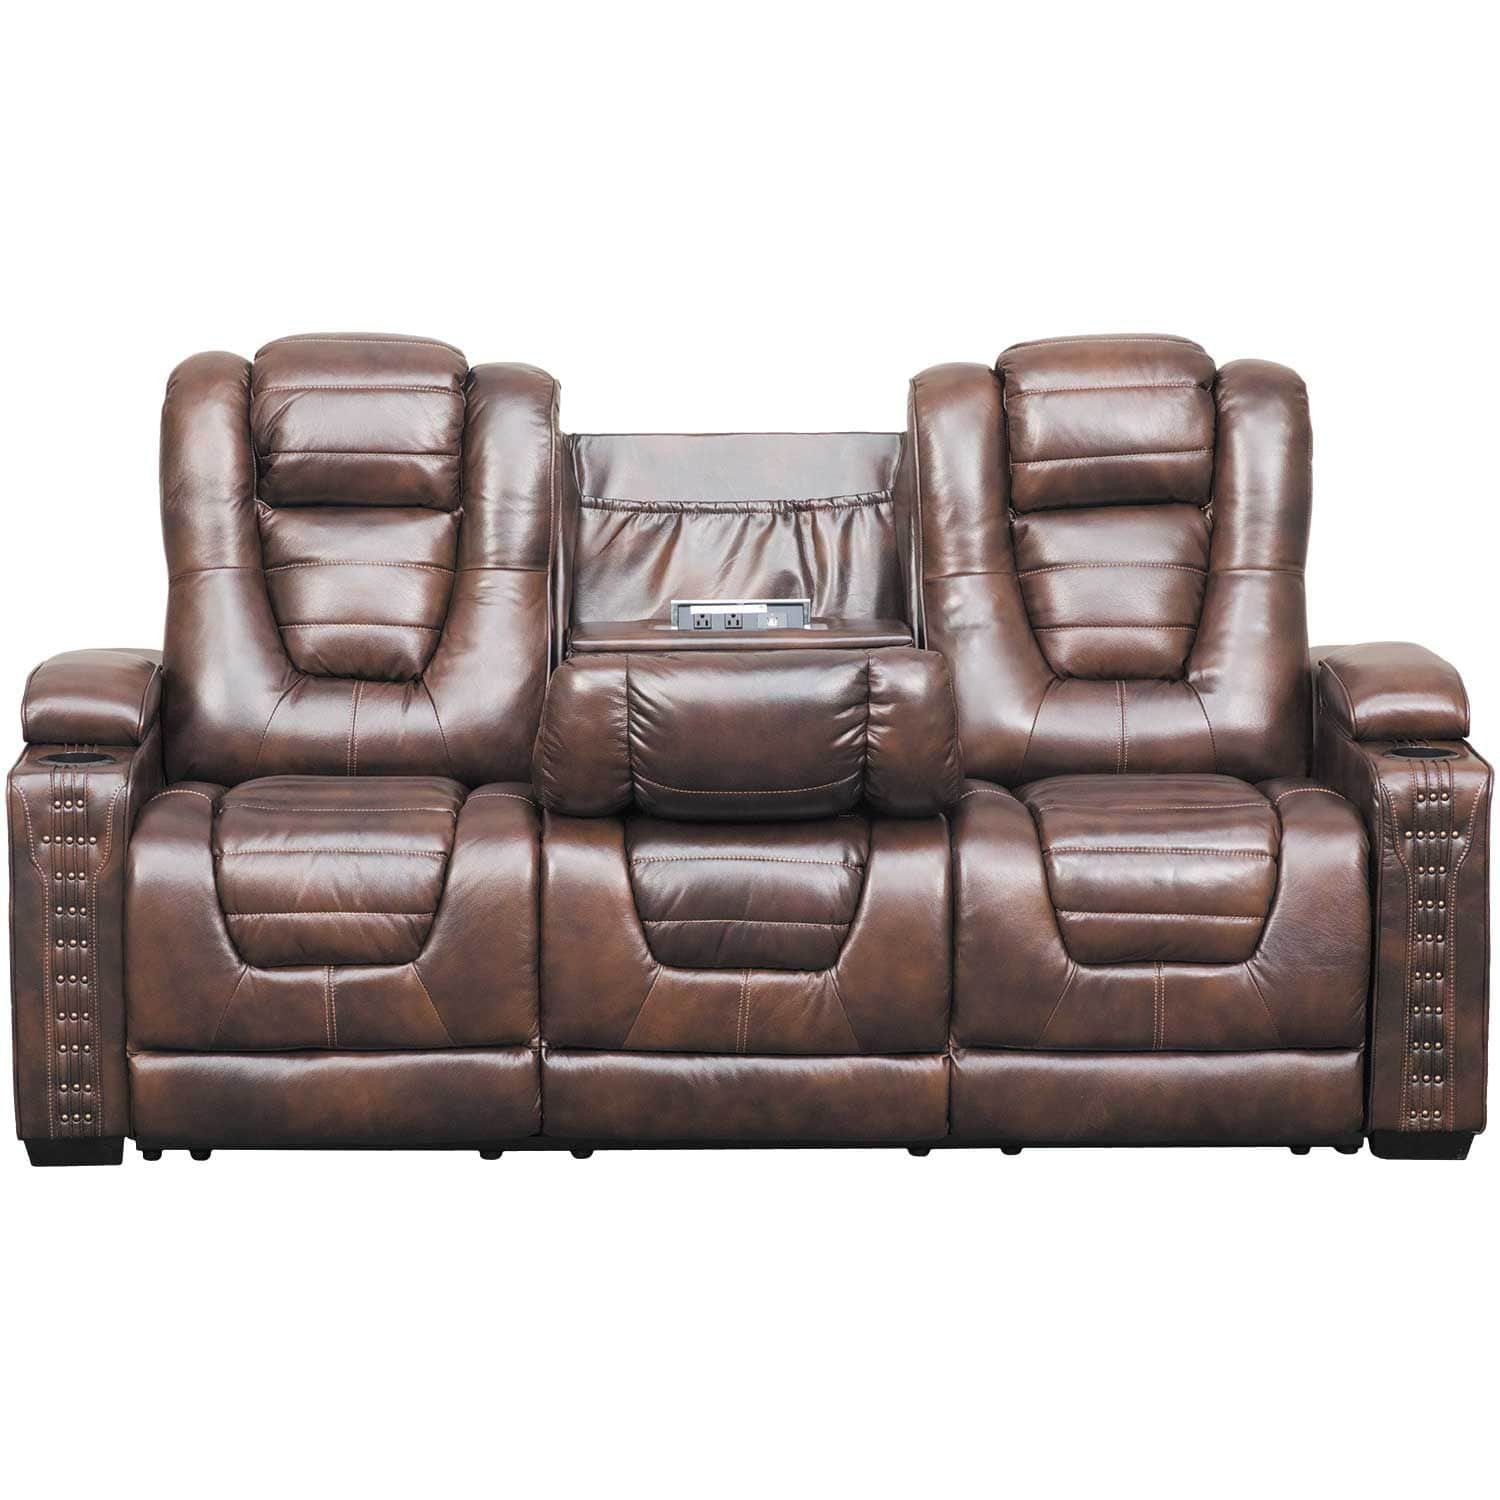 Big Chief Power Reclining Sofa with Drop Table and Adjustable Headrest